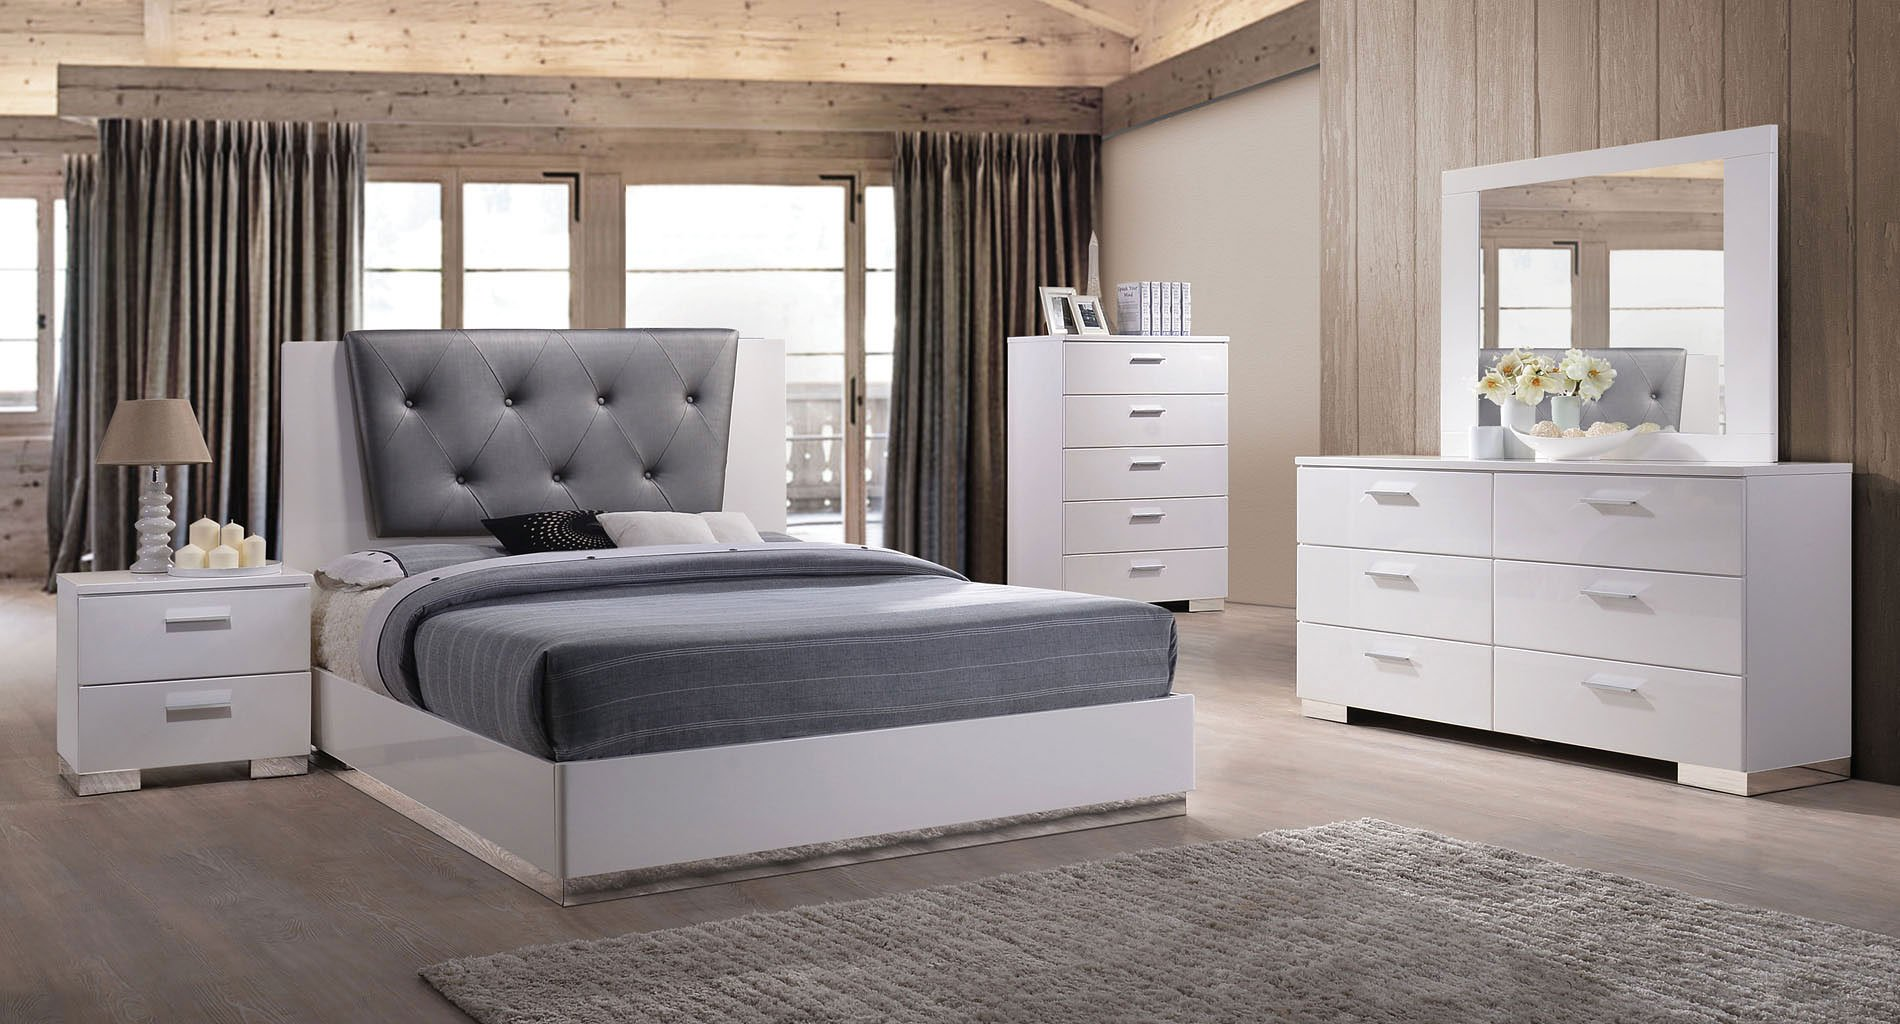 Lorimar II Low Profile Bedroom Set